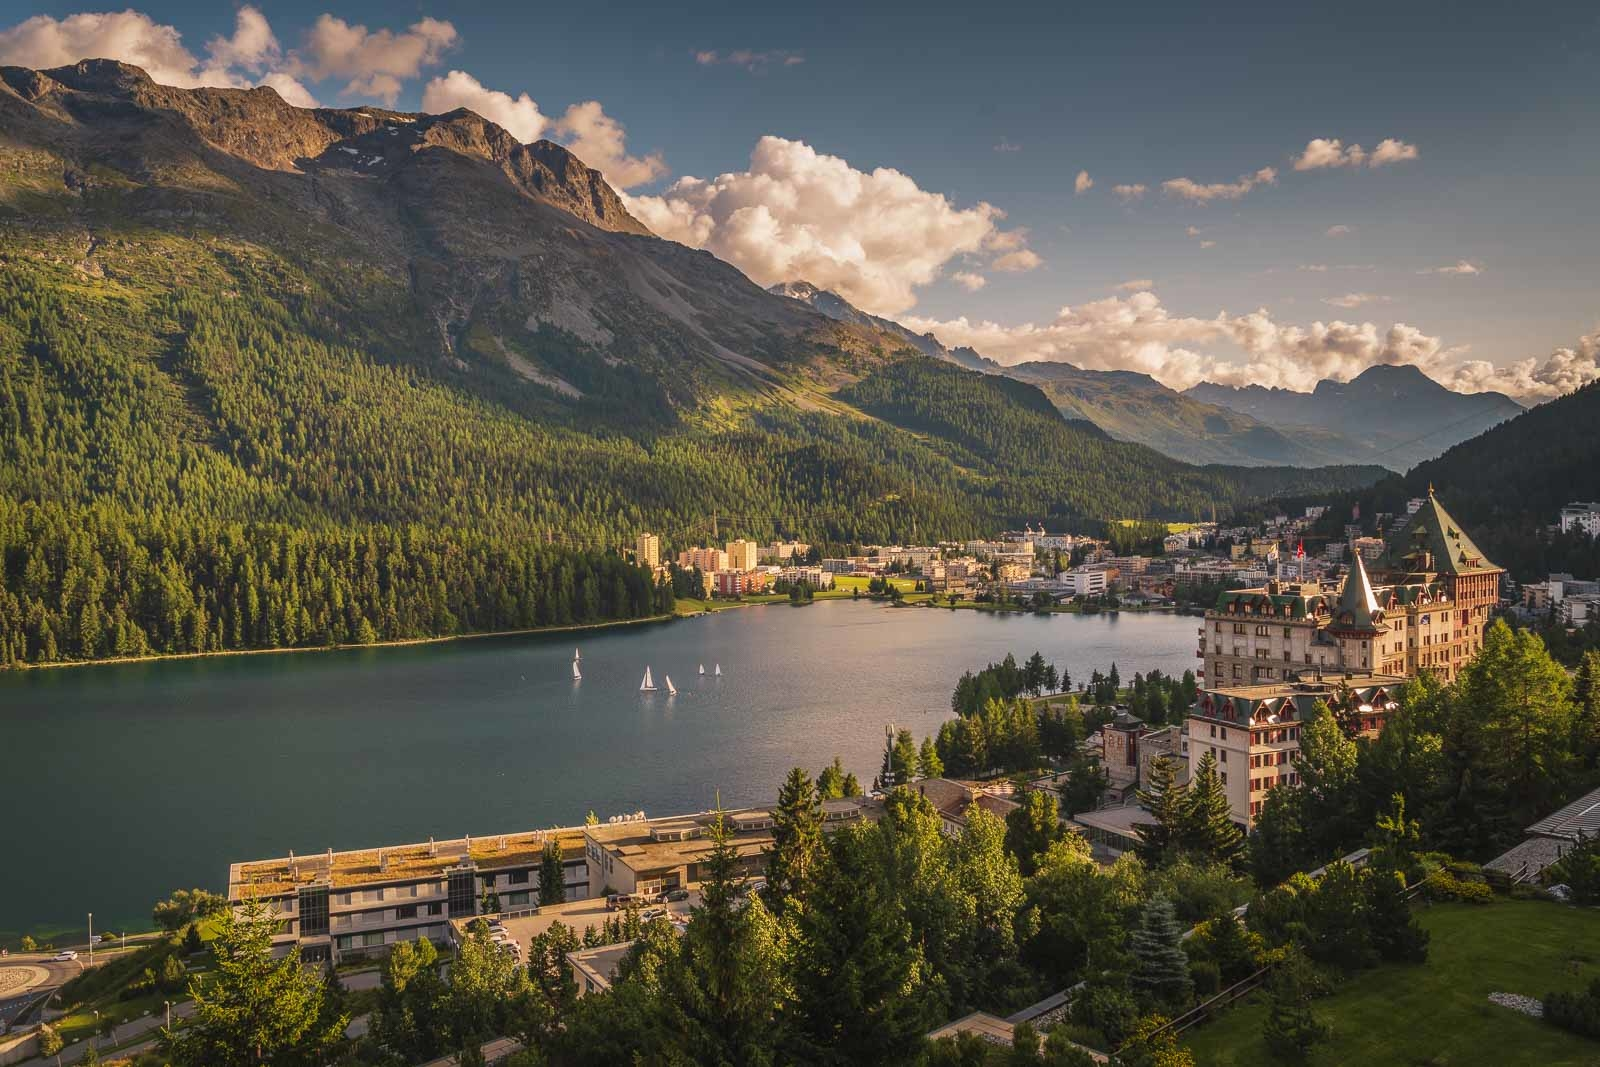 Things to do in St. Moritz